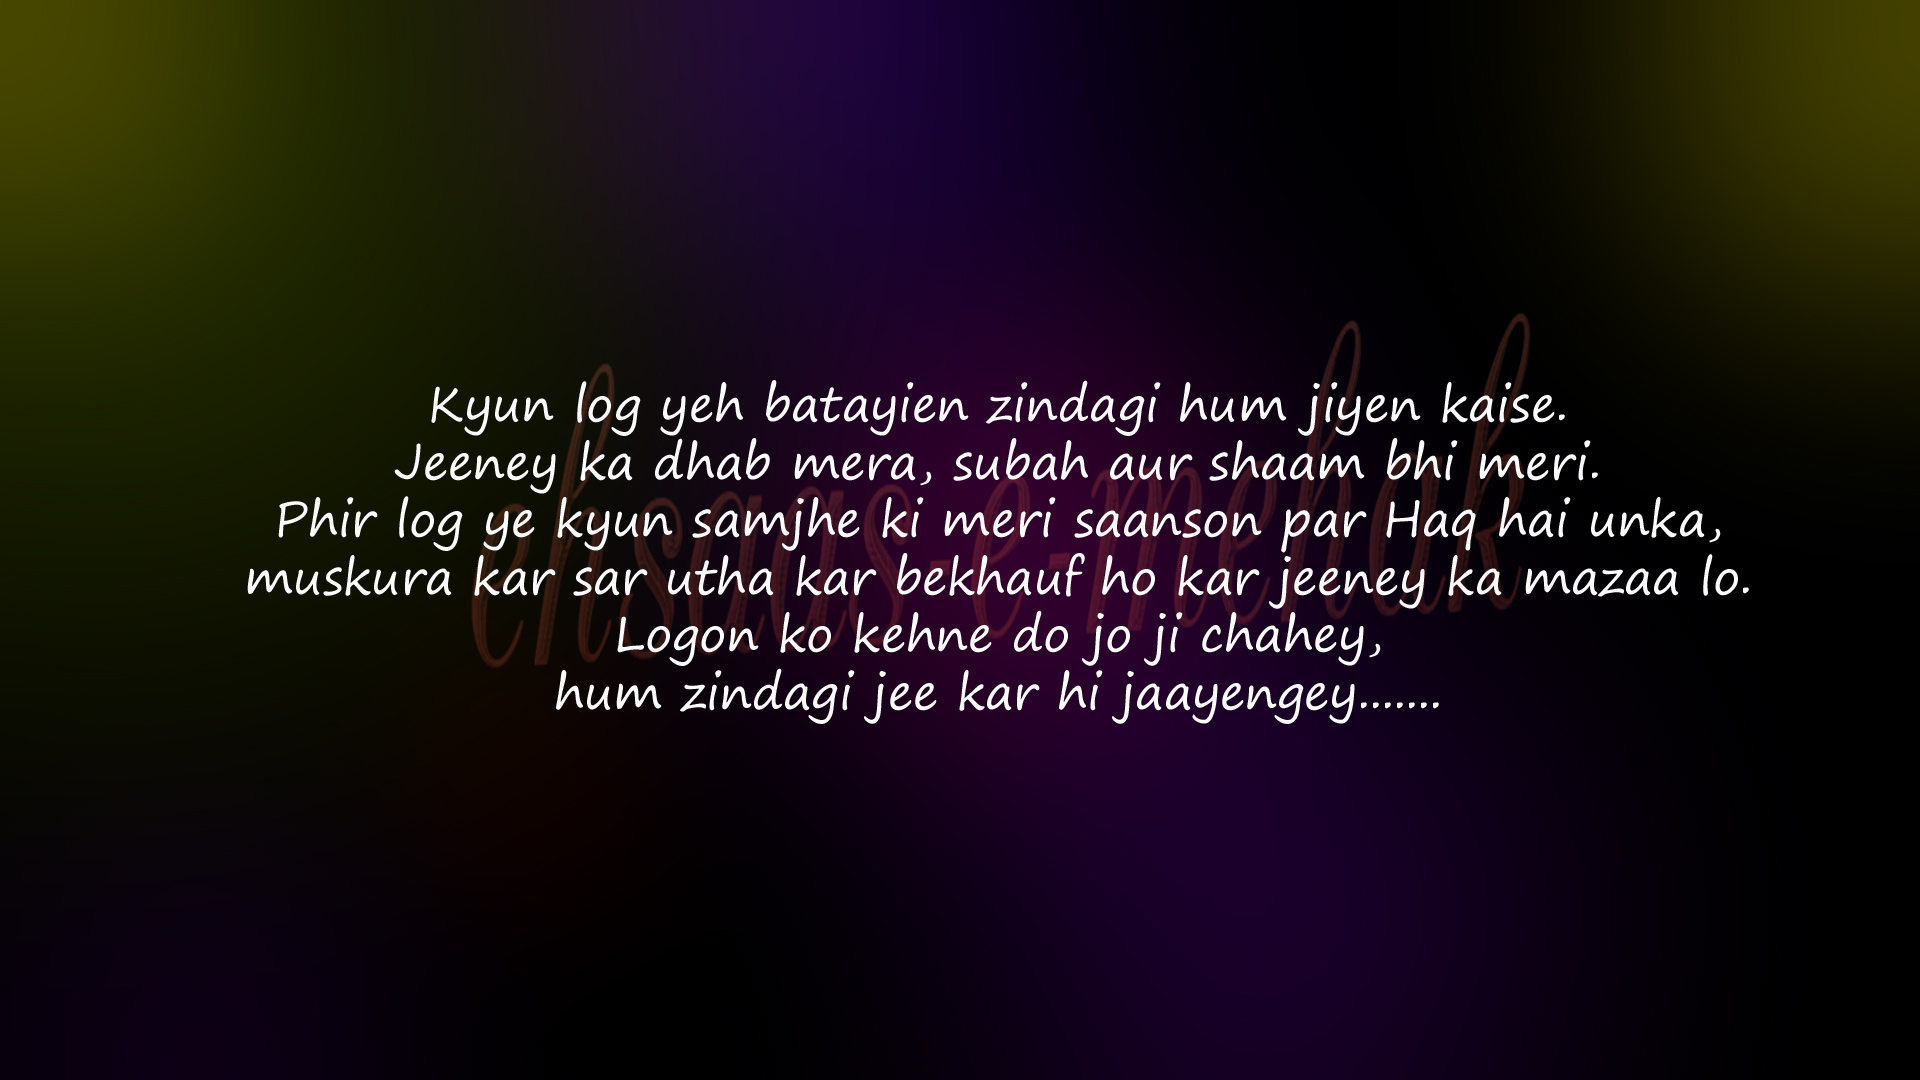 best hindi shayari for love, best love shayari in hindi, blogs, hindi poetry, hindi poetry on life, hindi shayari, Indian poetry writers, judaai shayari, love hindi shayari, Love quotes with image, poetry images in hindi, poetry in hindi, sad shayri, shayari in hindi